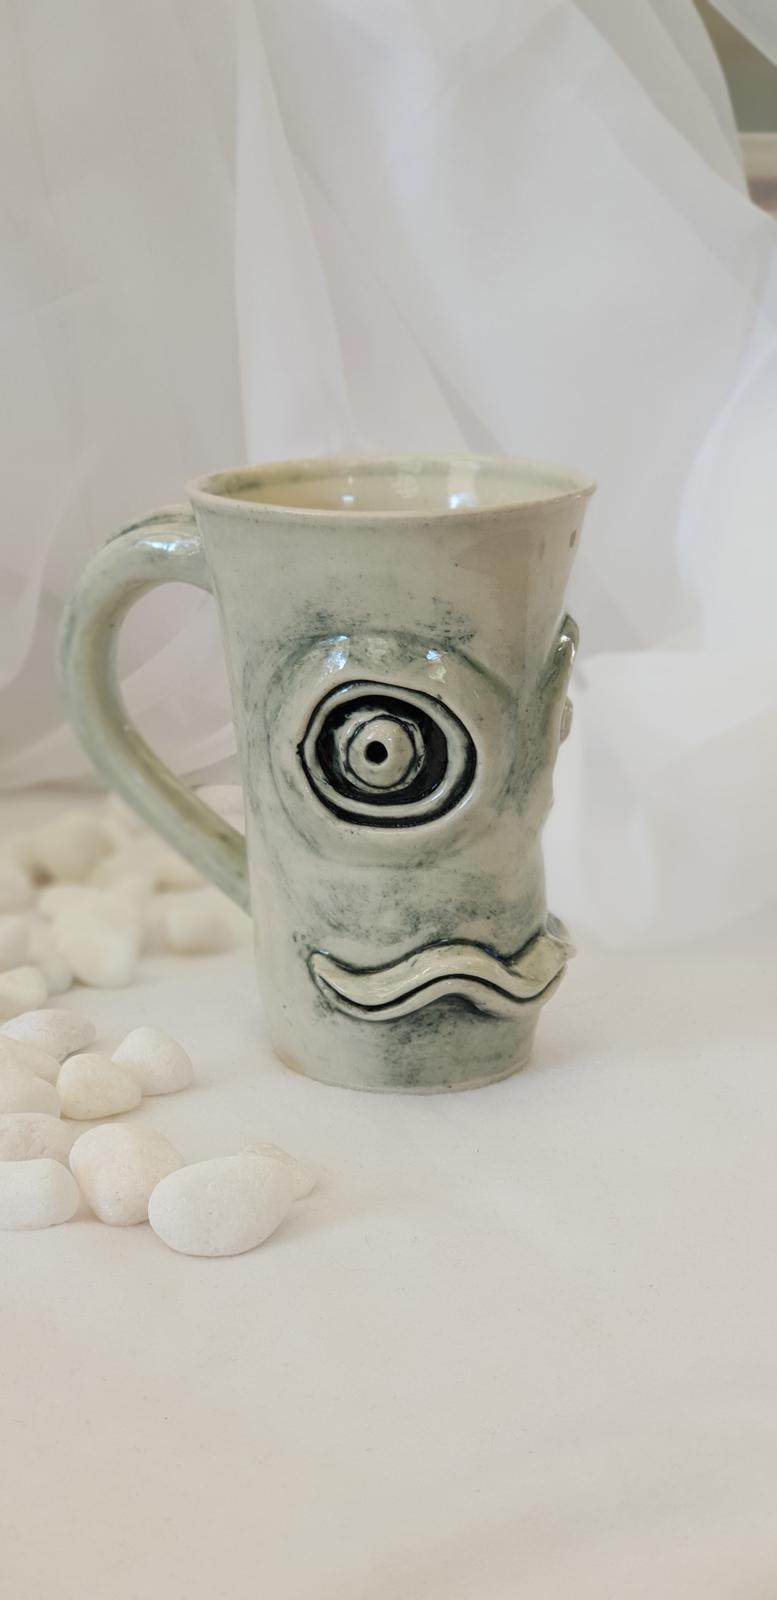 Mugshot! (A selection from a series of hand sculpted character face mugs)